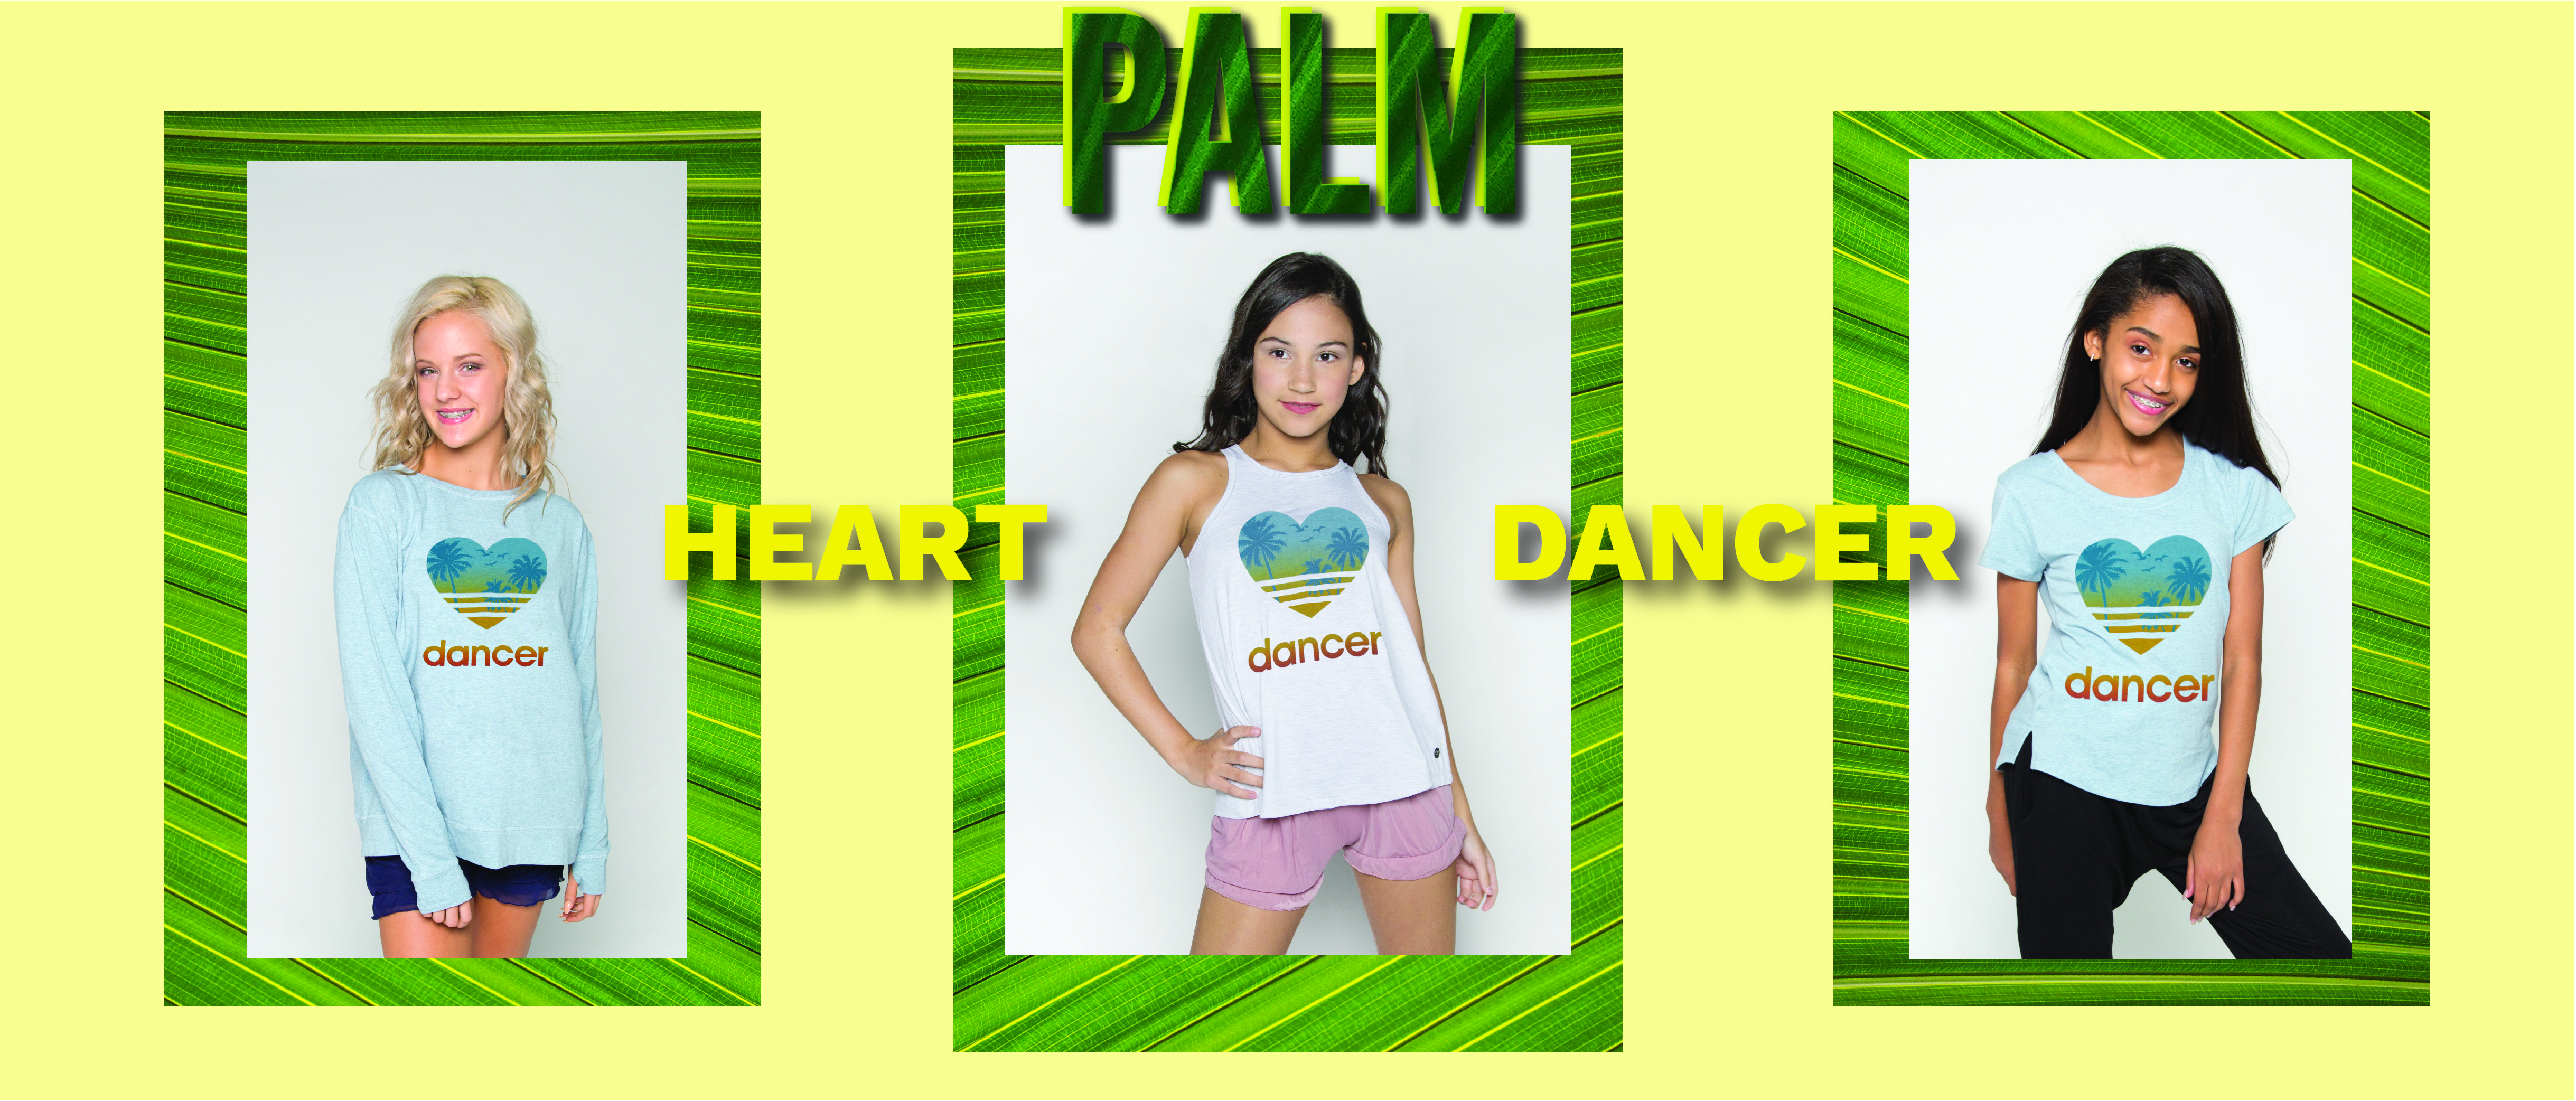 HeartDancerPalmBanner